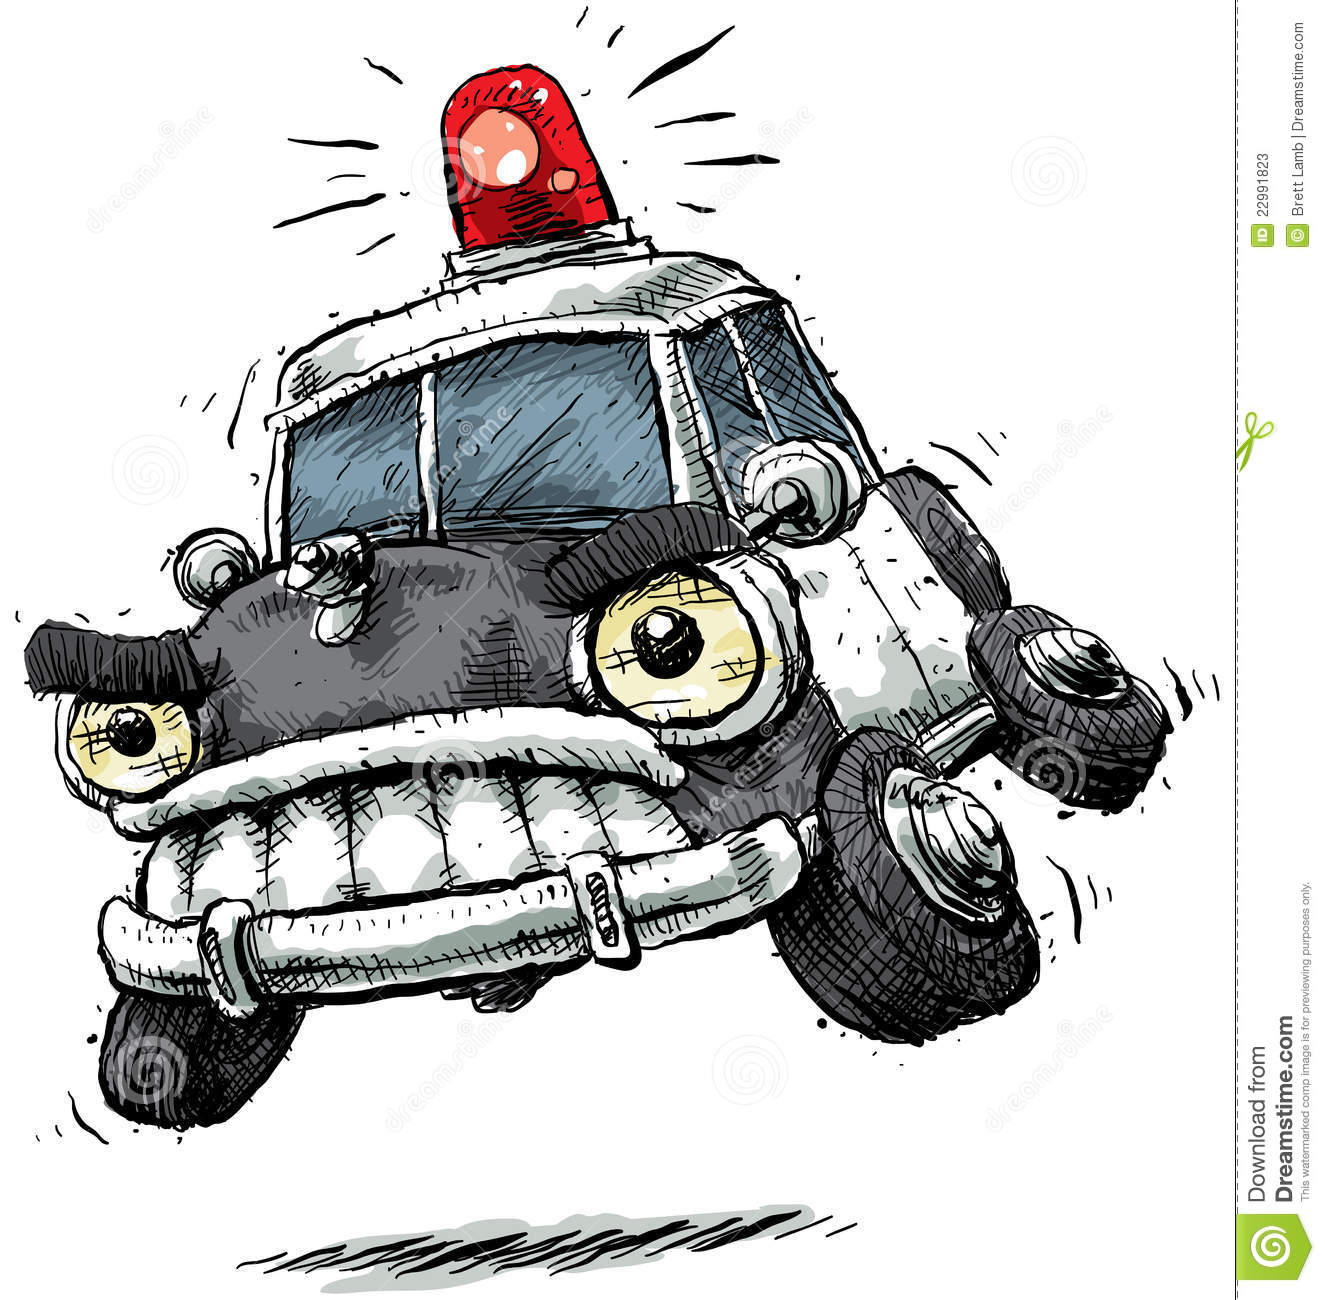 Car chase clipart picture royalty free download Cartoon Police Car Stock Photos - Image: 22991823 picture royalty free download